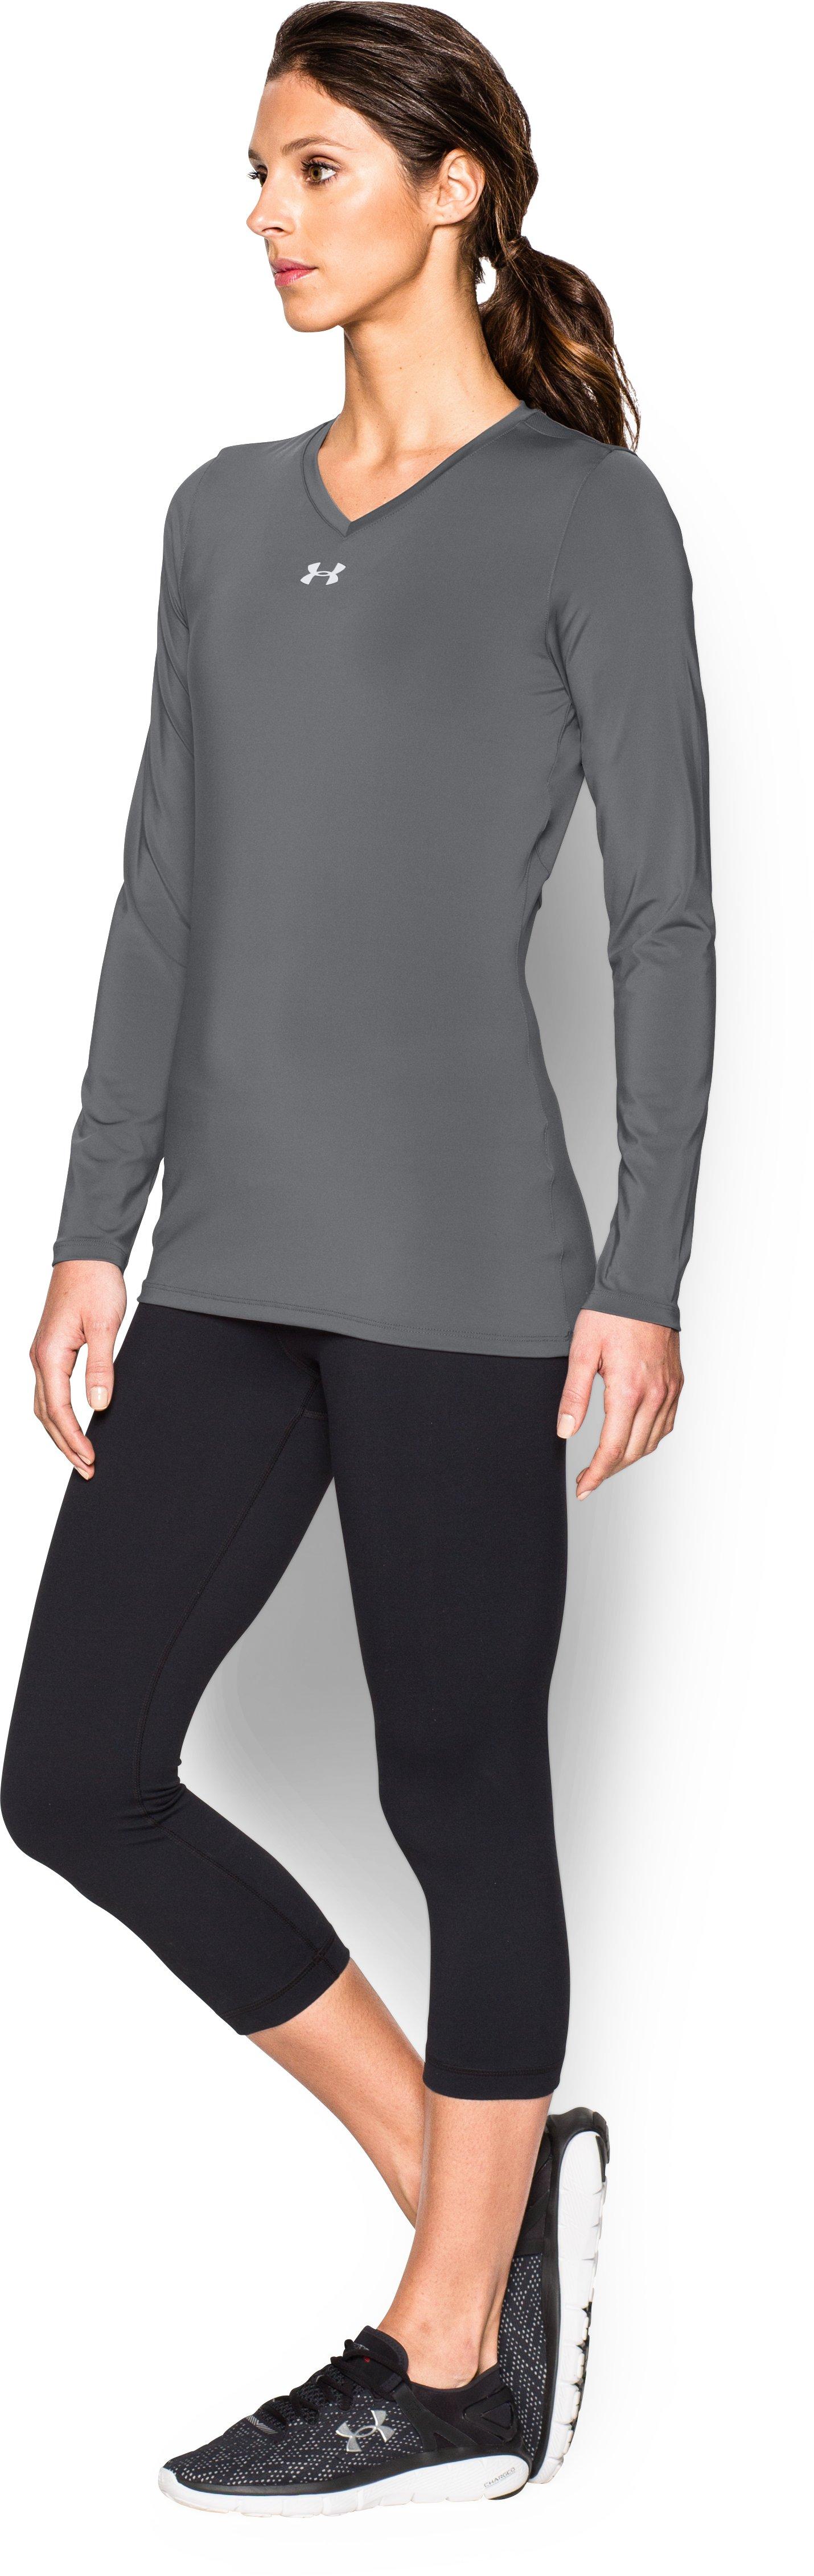 Women's UA Power Alley Long Sleeve Jersey, Graphite,